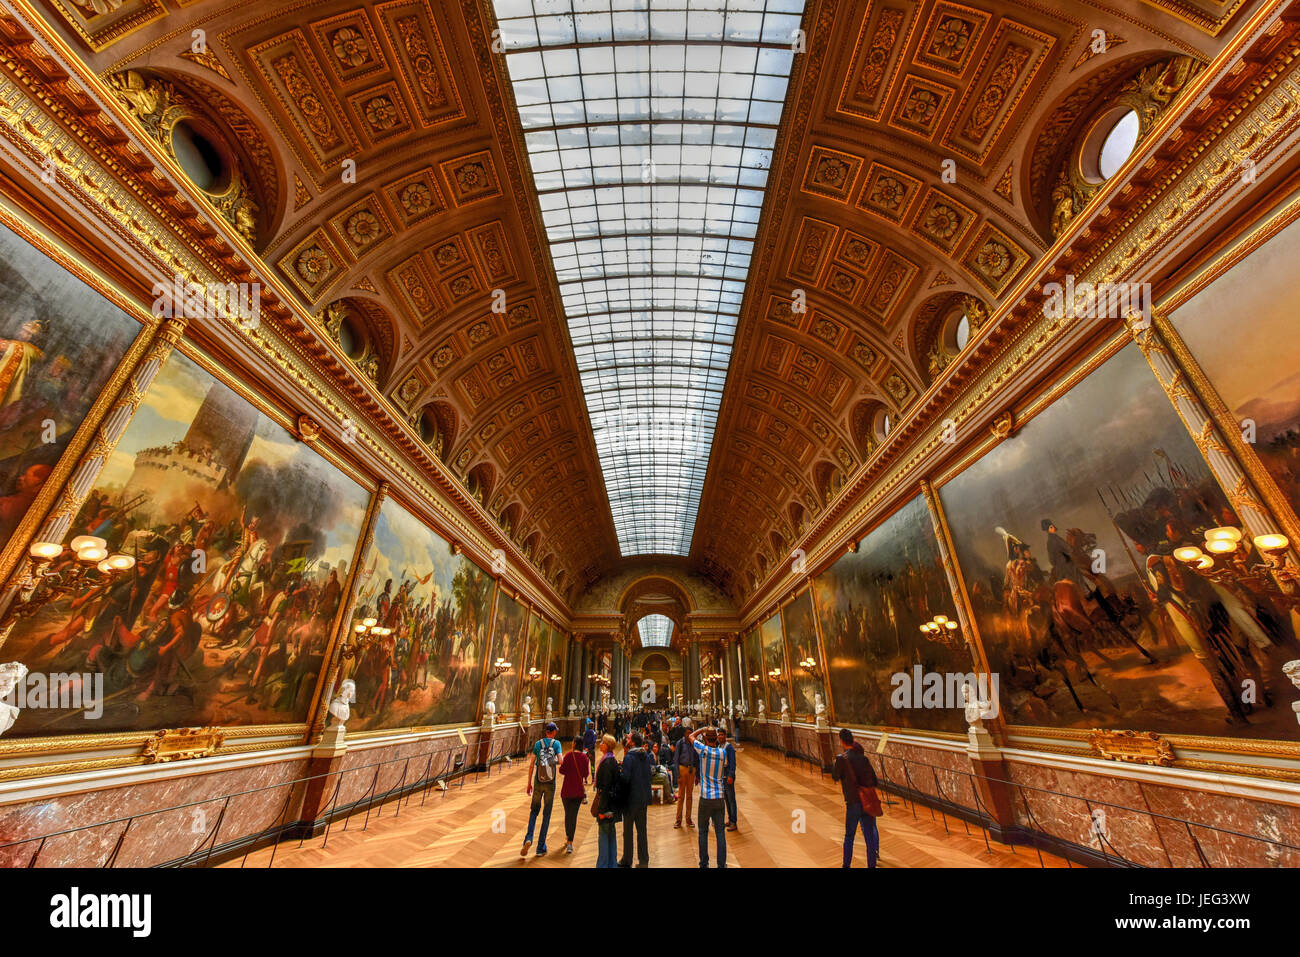 Versailles, France - May 14, 2017: The Battles Gallery in the Palace of Versailles in France. - Stock Image